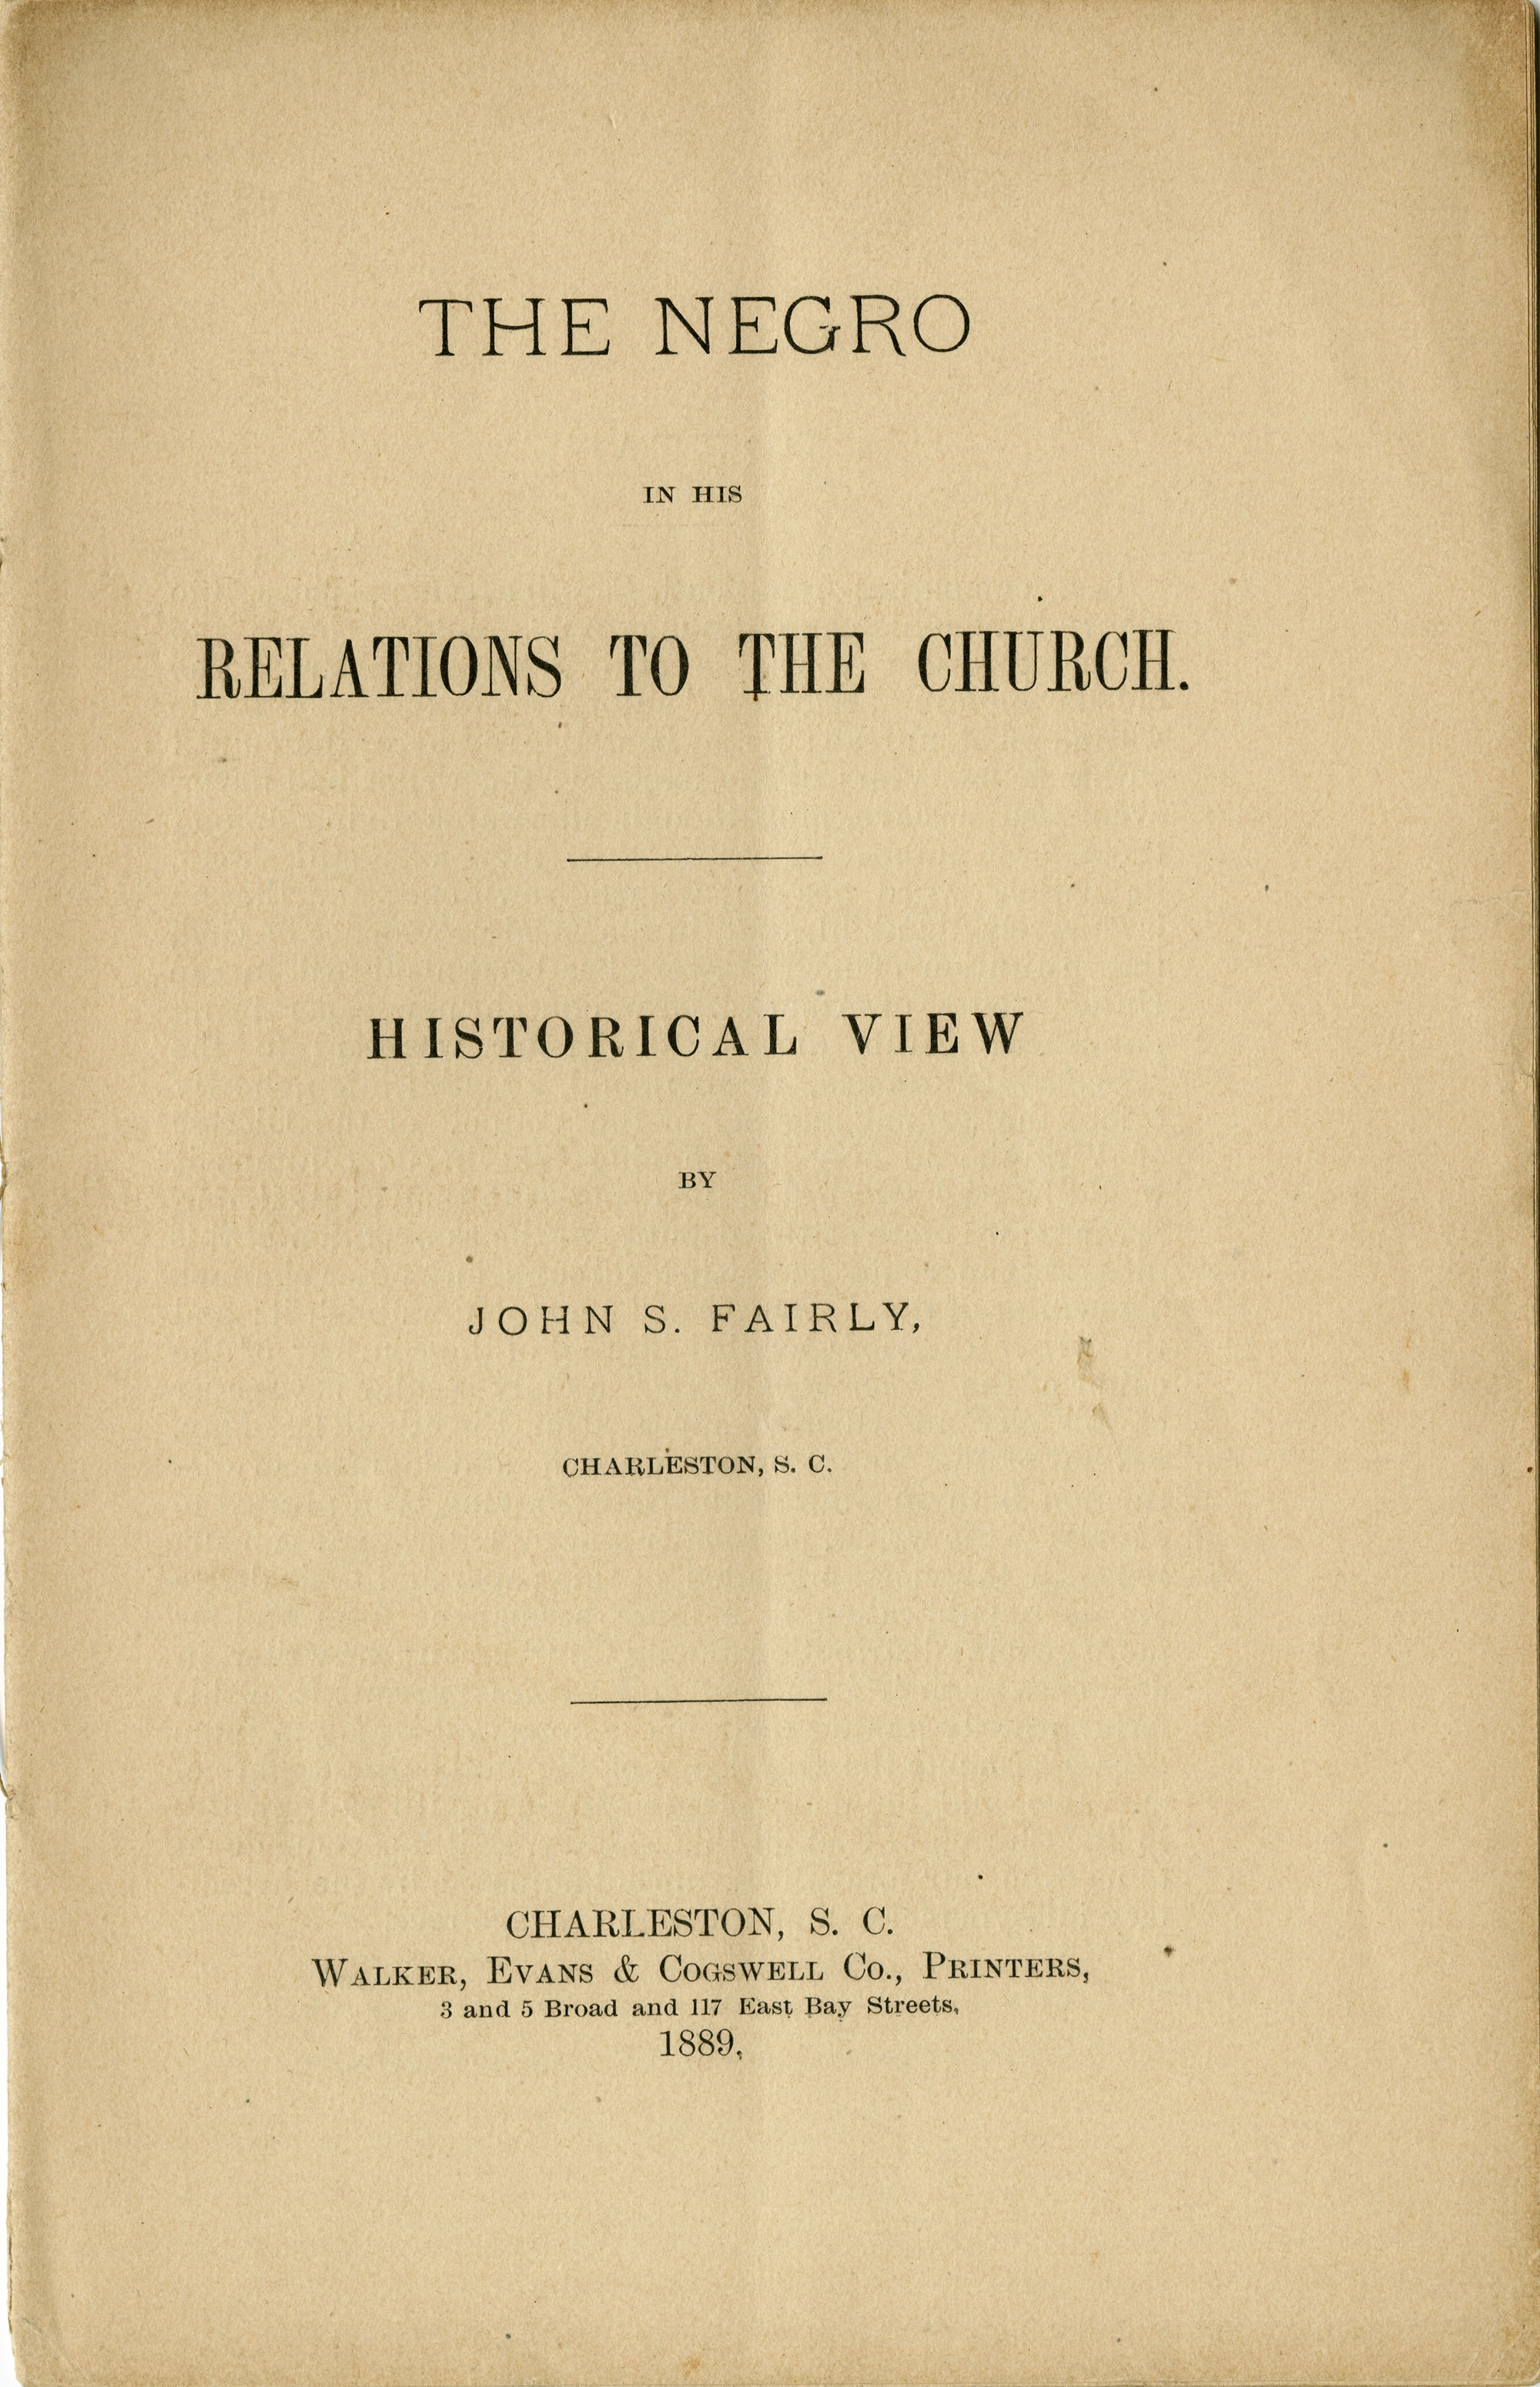 The Negro in his Relations to the Church : historical view / by John S. Fairly.